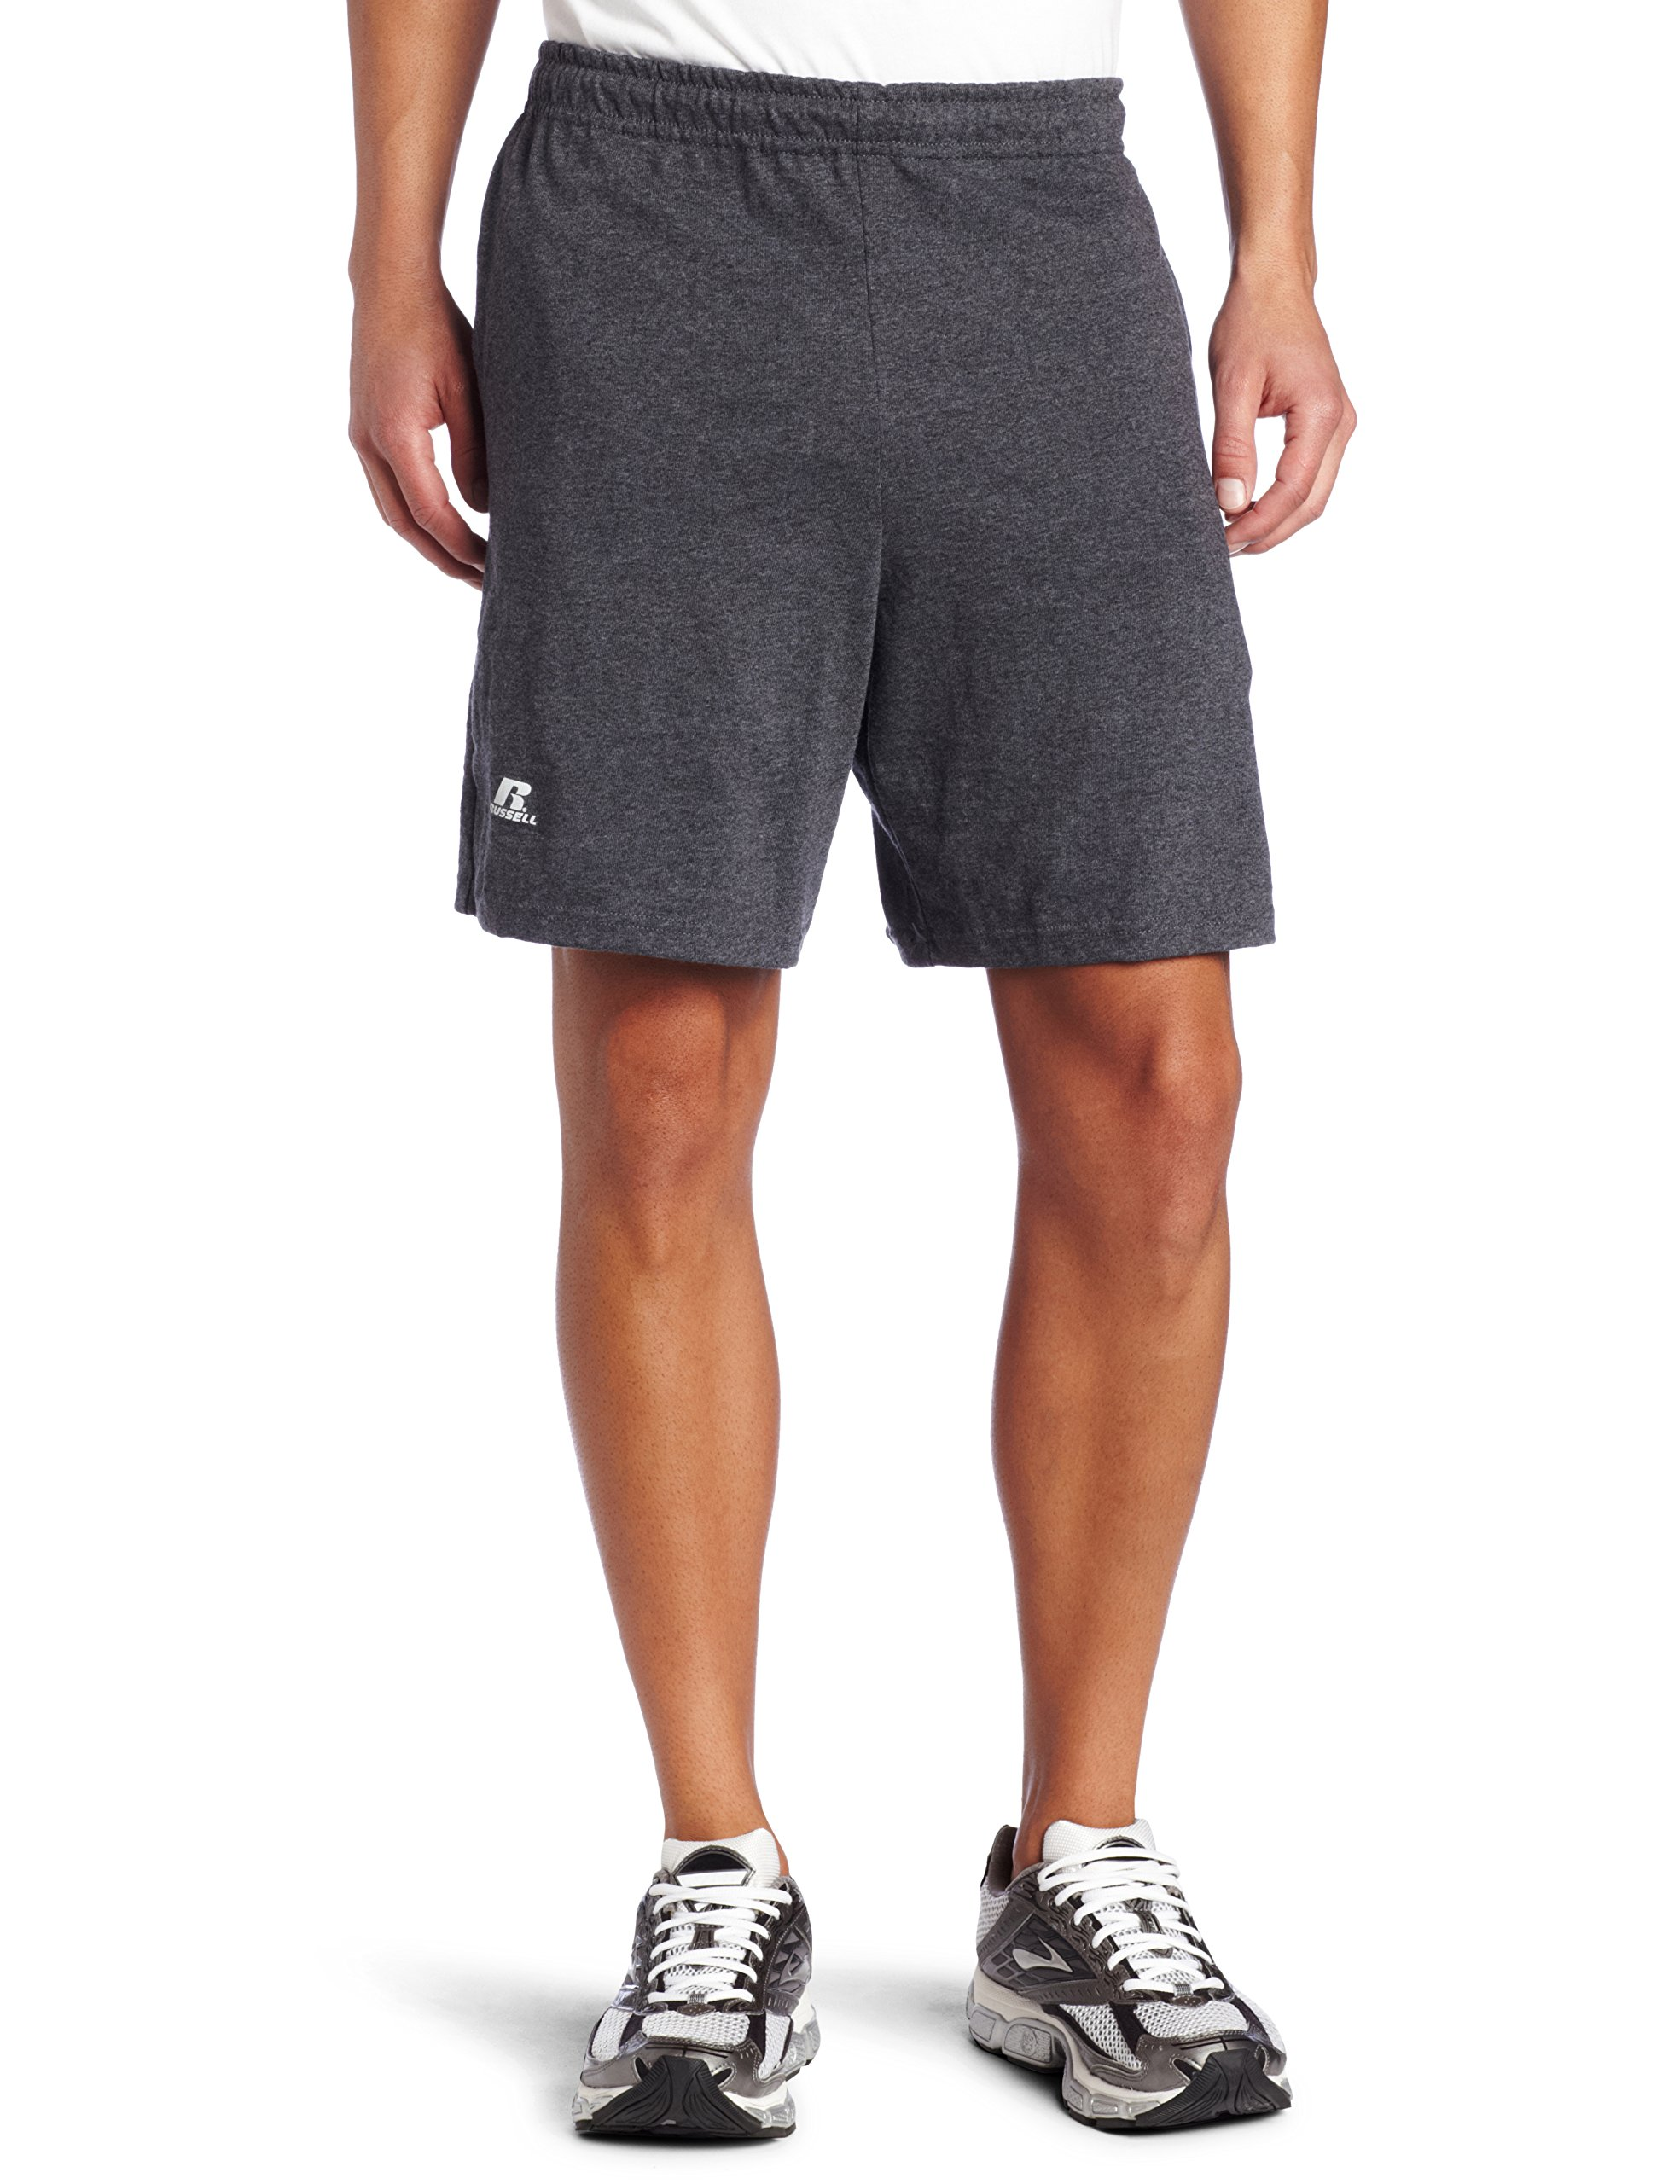 Russell Athletic Men's Cotton Baseline Short with Pockets, Black Heather, Small